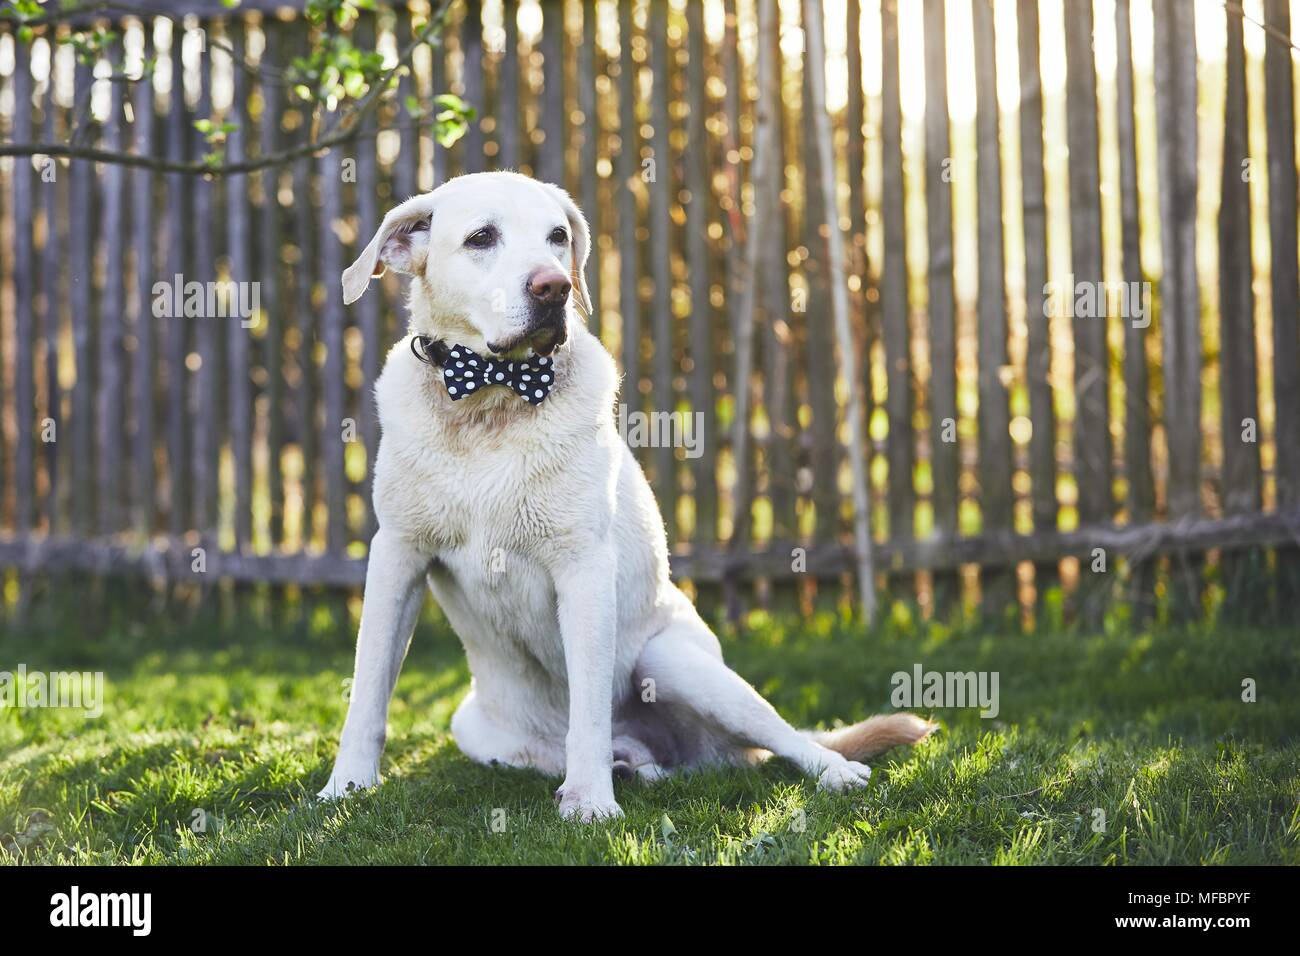 Dog on the garden at the sunset. Labrador retriever with bow tie sitting on the grass against wooden fence. - Stock Image